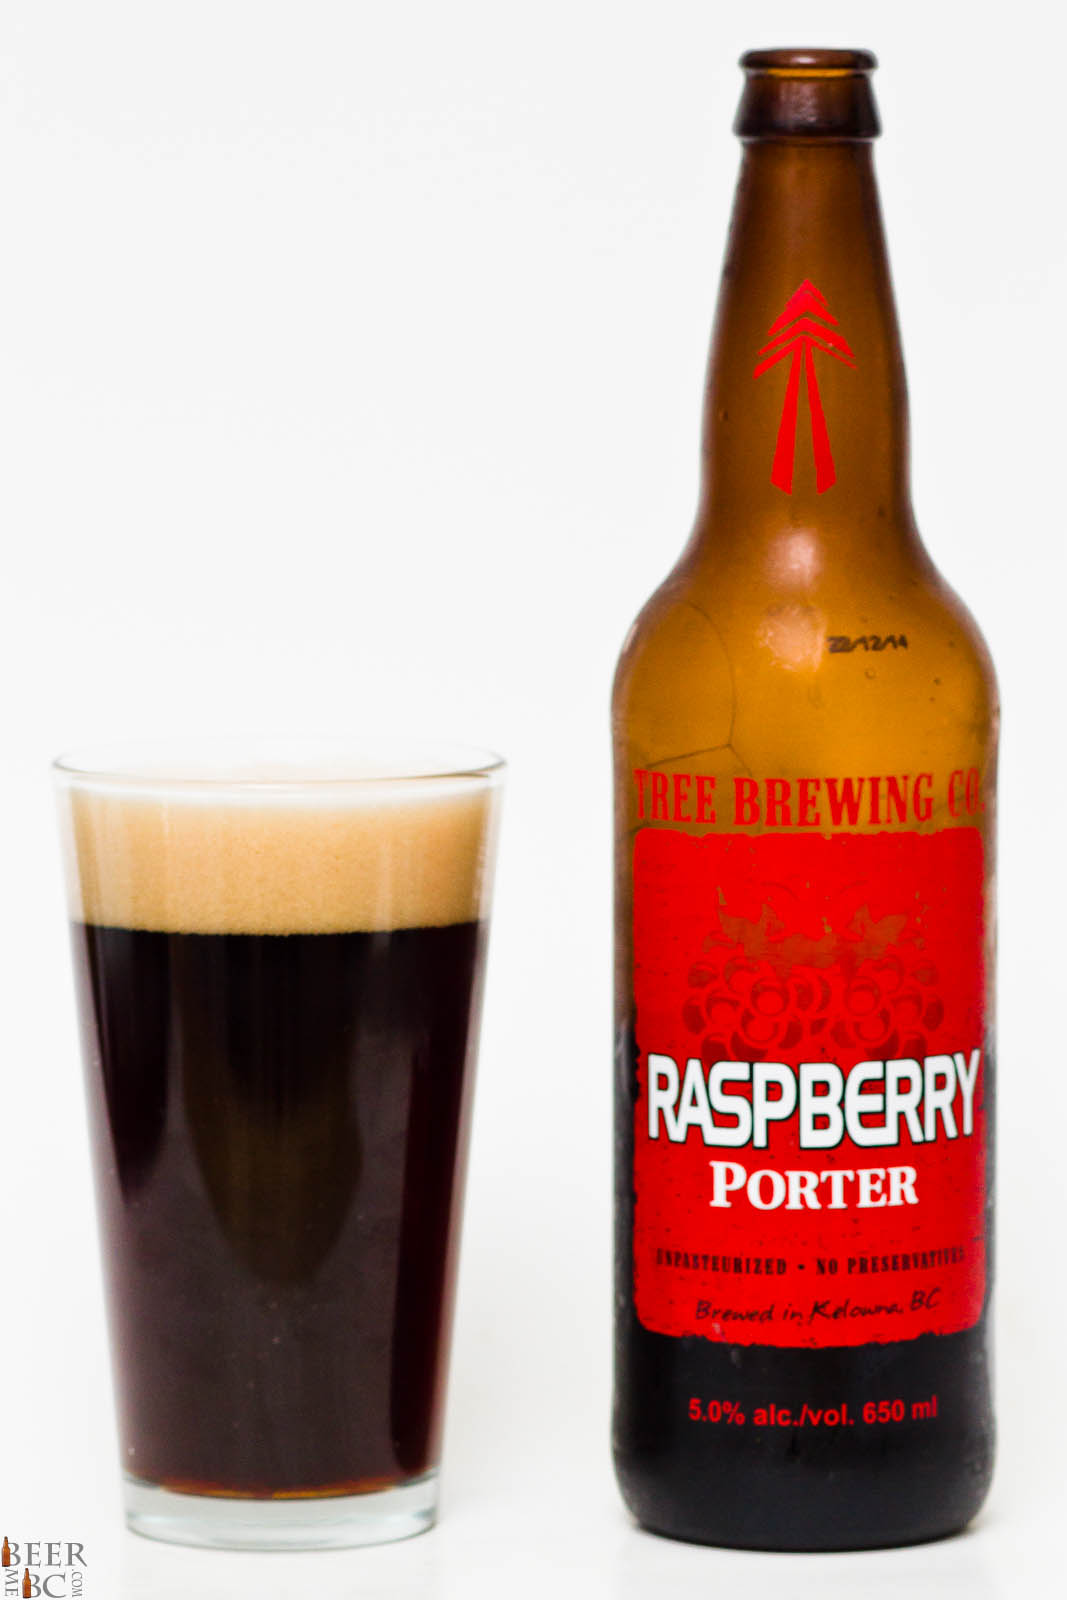 Le Meilleur Tree Brewing Co – Raspberry Porter Beer Me British Columbia Ce Mois Ci